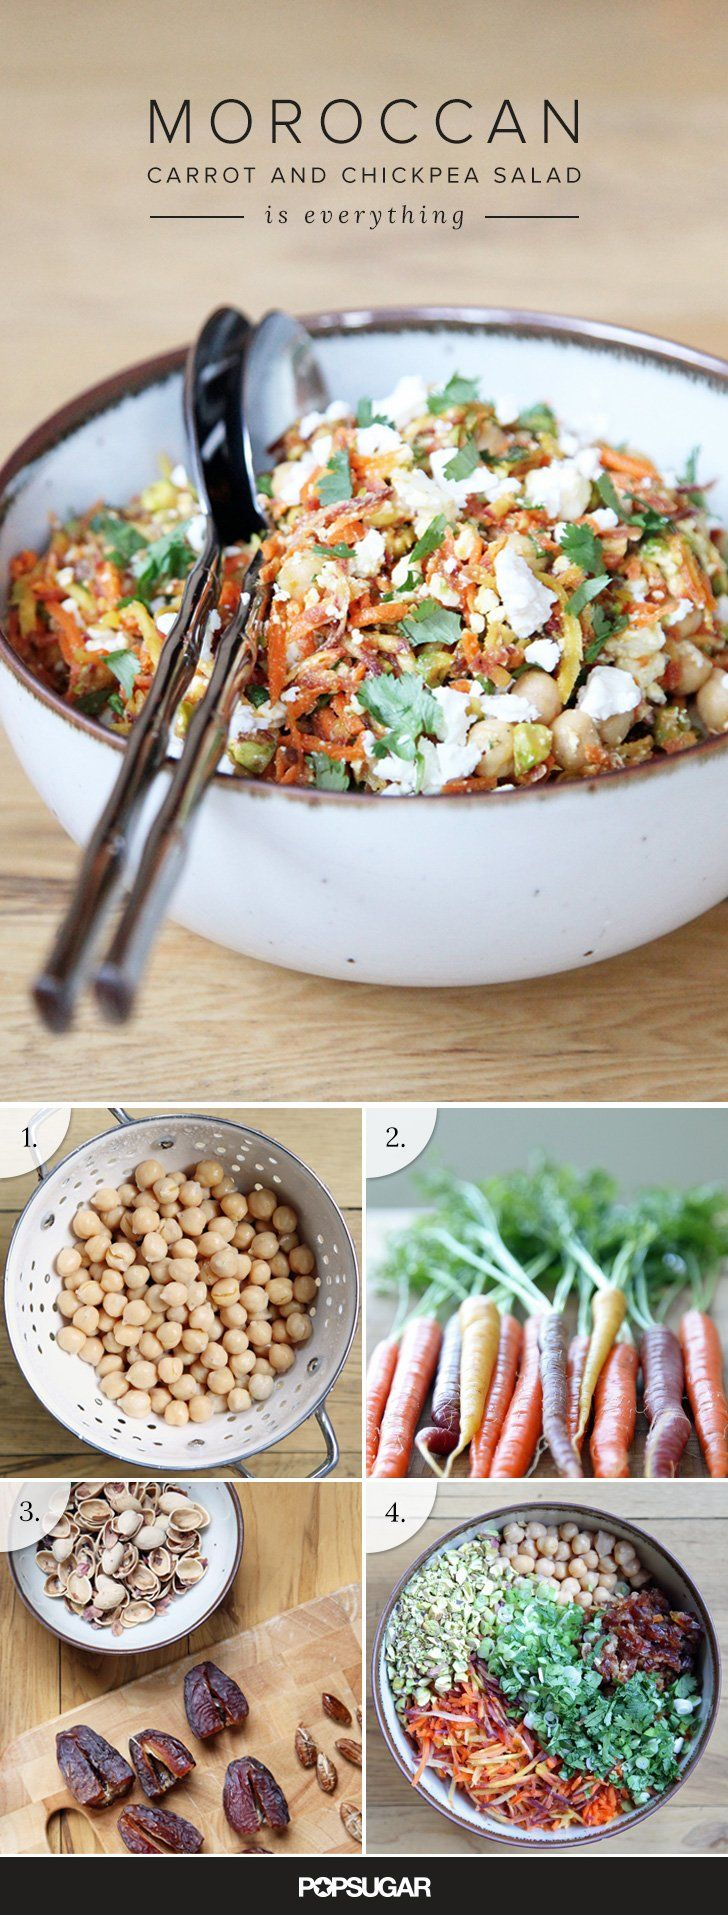 This Moroccan carrot and chickpea salad is lunch at its finest, leave out the FETA!